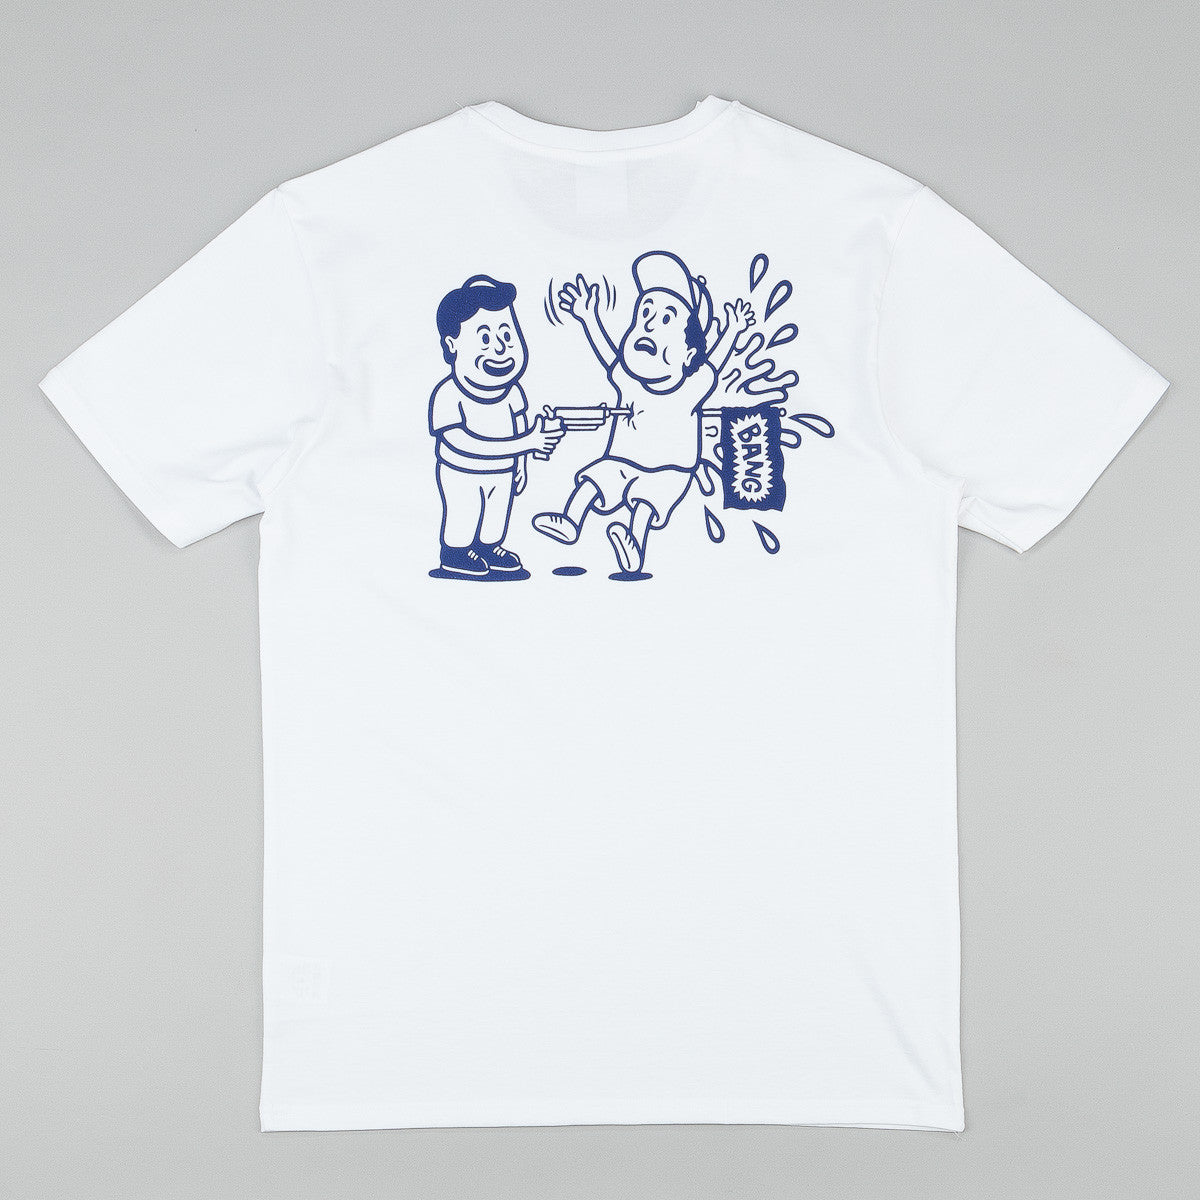 Polar Jacob's Corner Bang T-Shirt - White / Navy